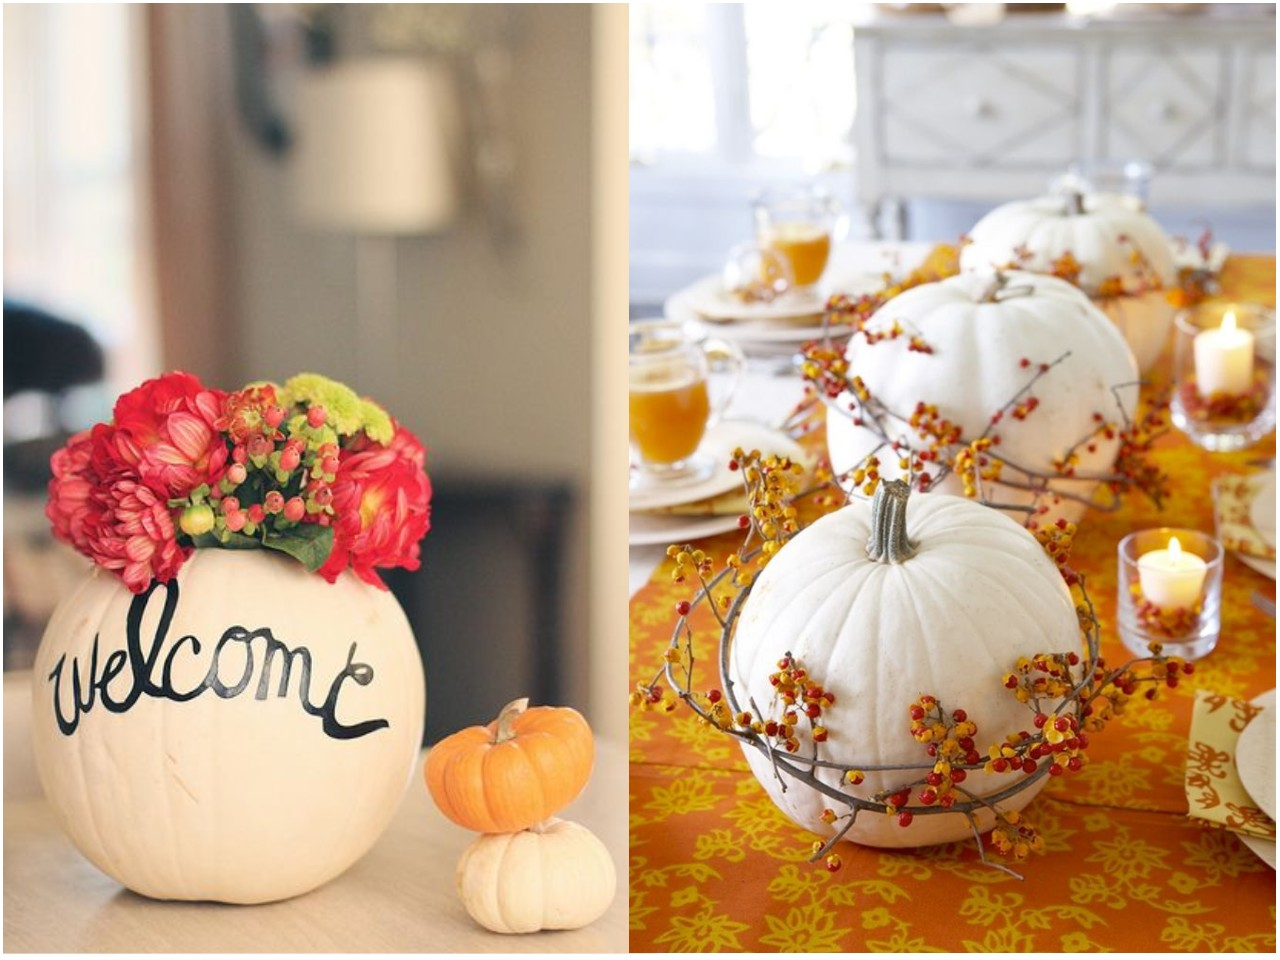 10 cosas originales para decorar tu mesa esta temporada for Decorar calabazas secas